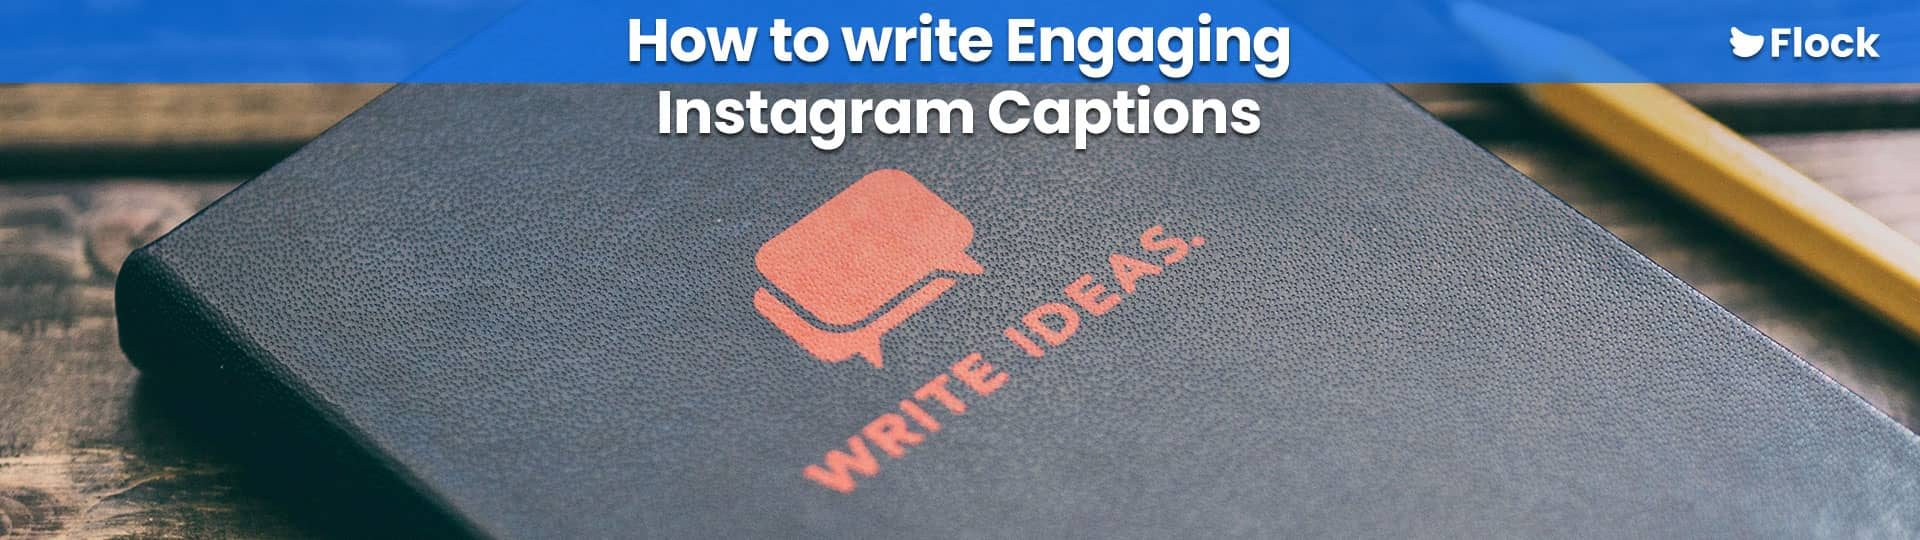 How-to-Write-ENgaging-Intagram-Captions